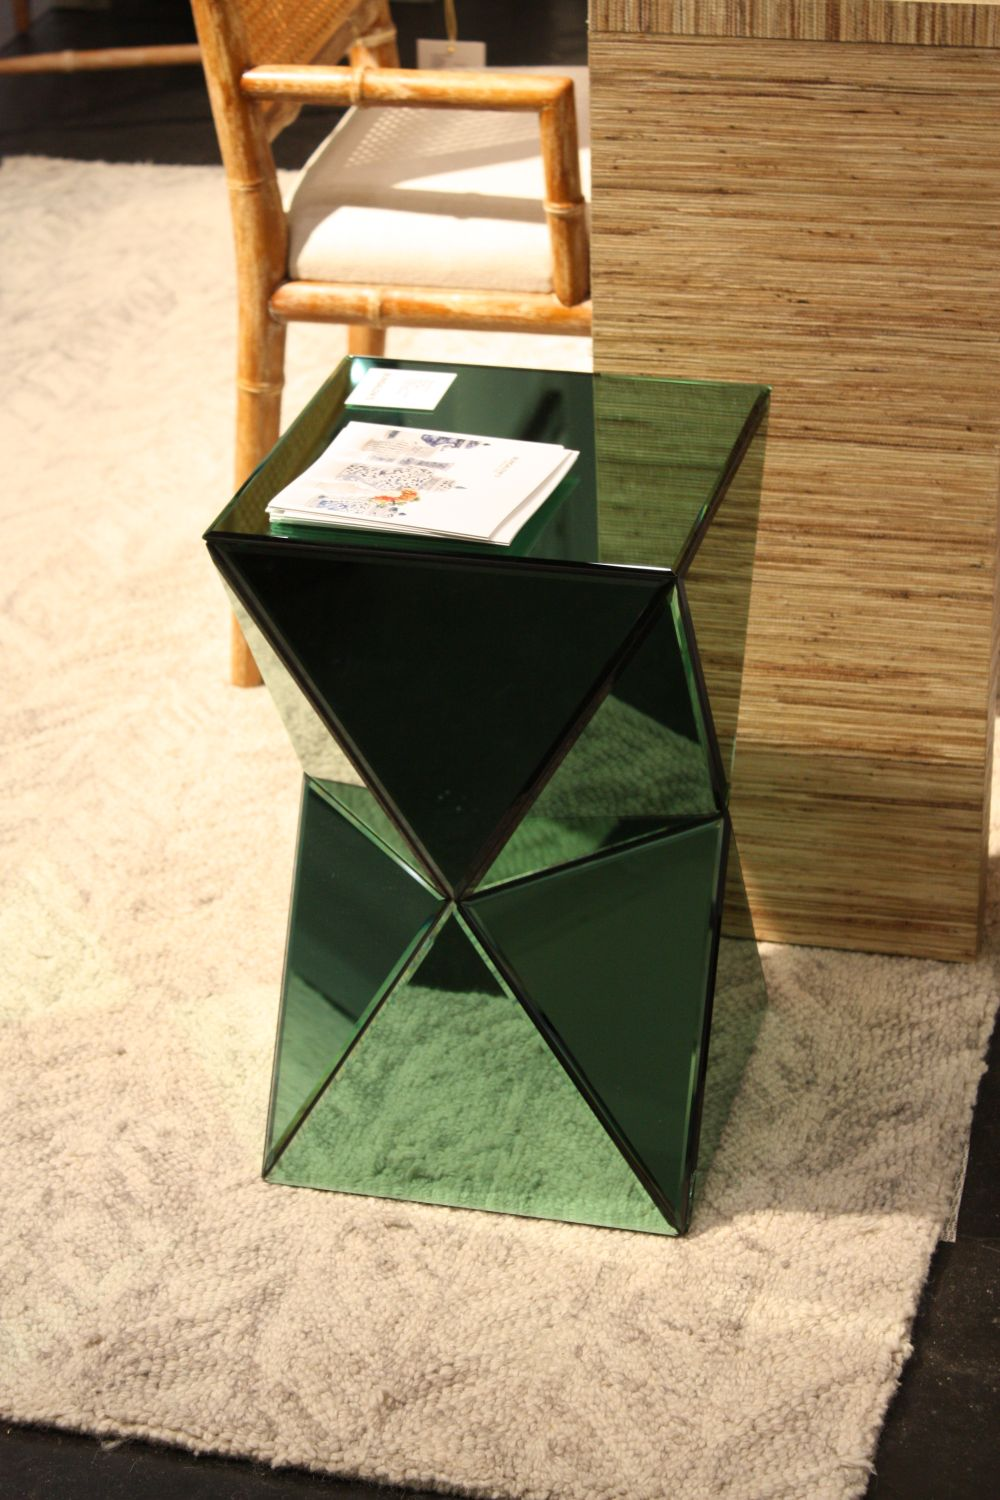 This side table reflects the decor around it through a green filter